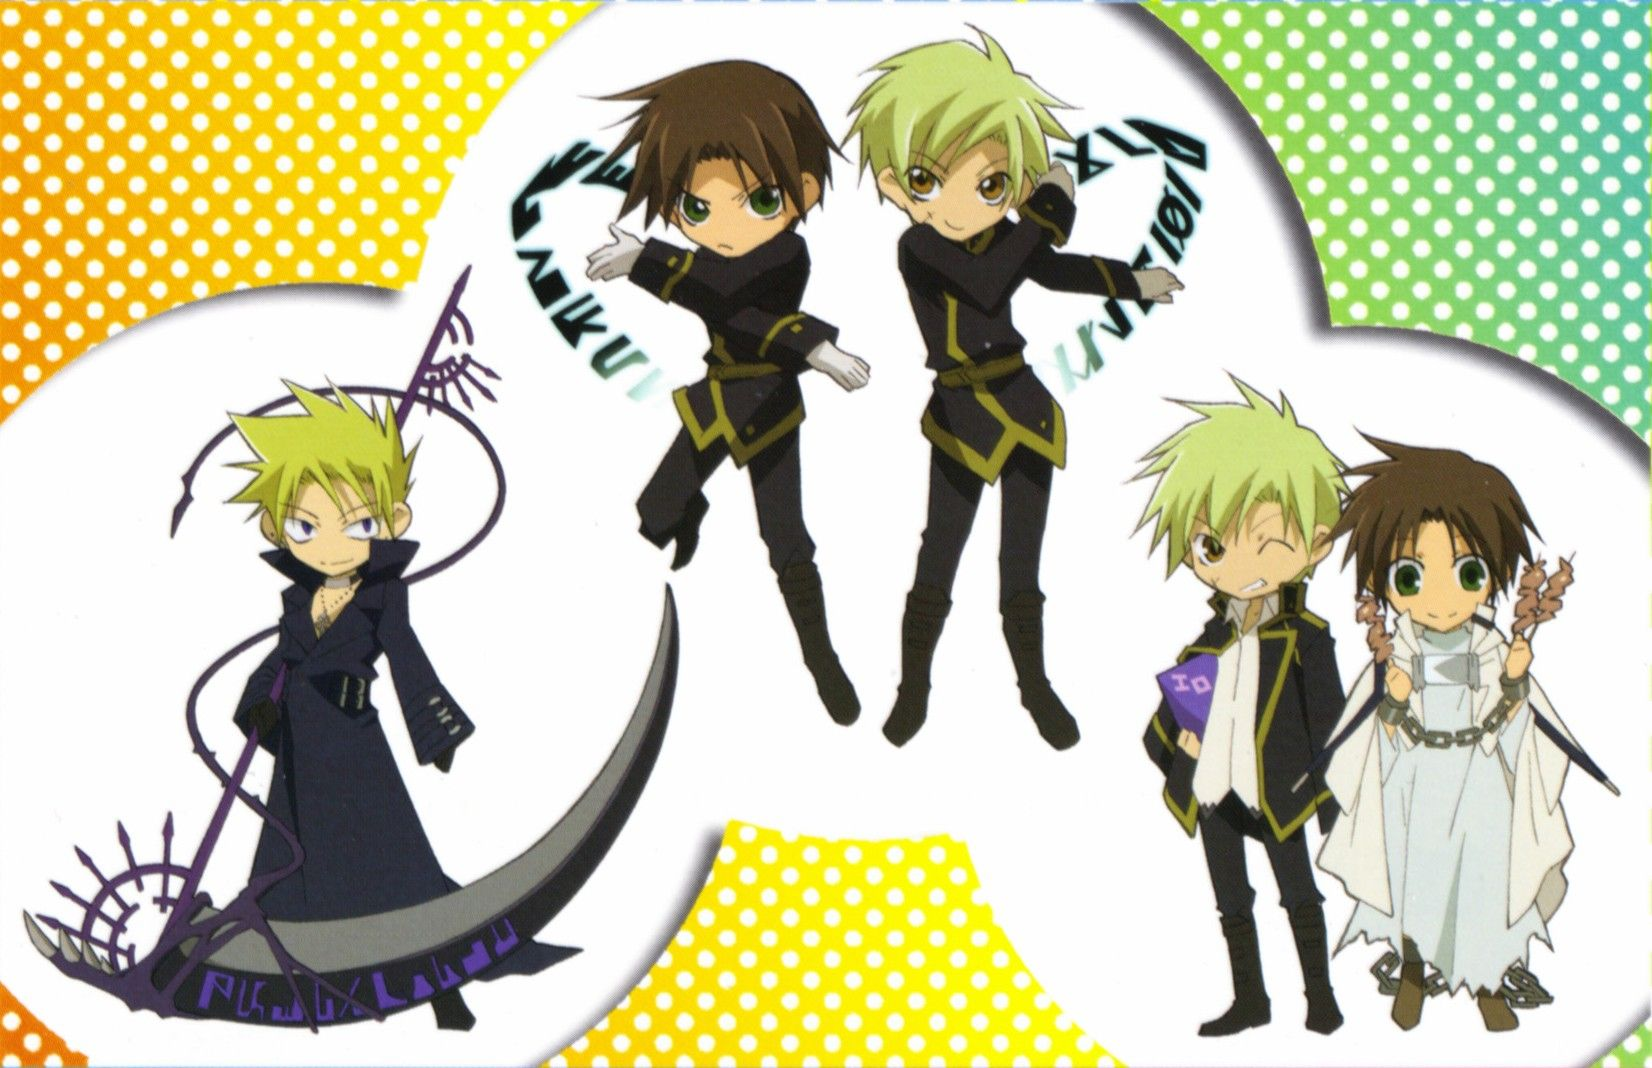 Tags 07 Ghost Teito Klein Frau 07 Ghost Mikage 07 Ghost